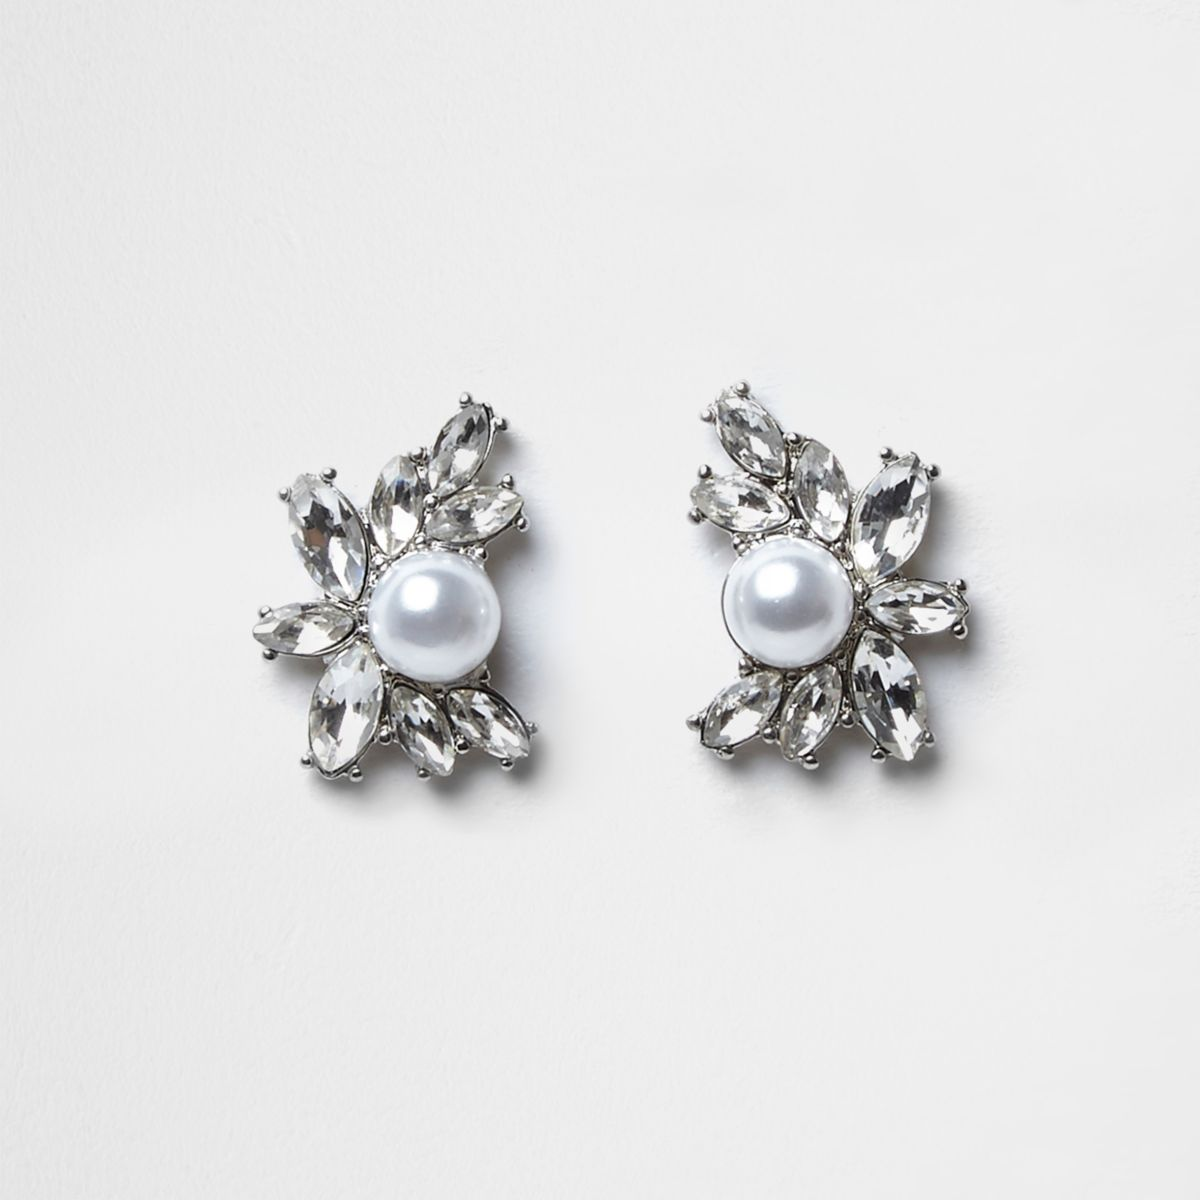 Silver tone jewel pearl cluster stud earrings